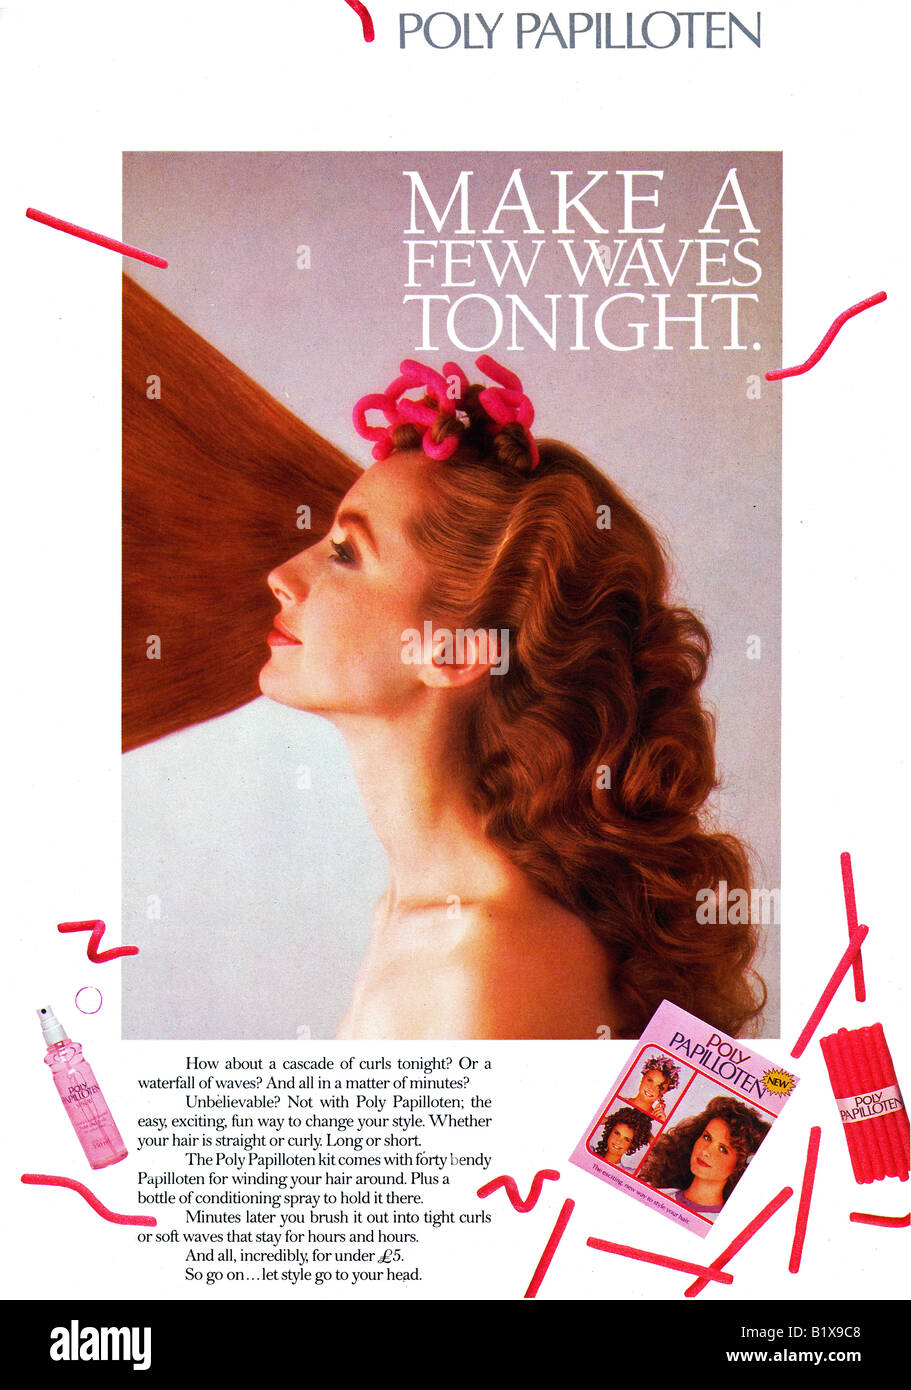 1980s advertisement for hair styling products for curling or waving from Polly Papilloten FOR EDITORIAL USE ONLY - Stock Image